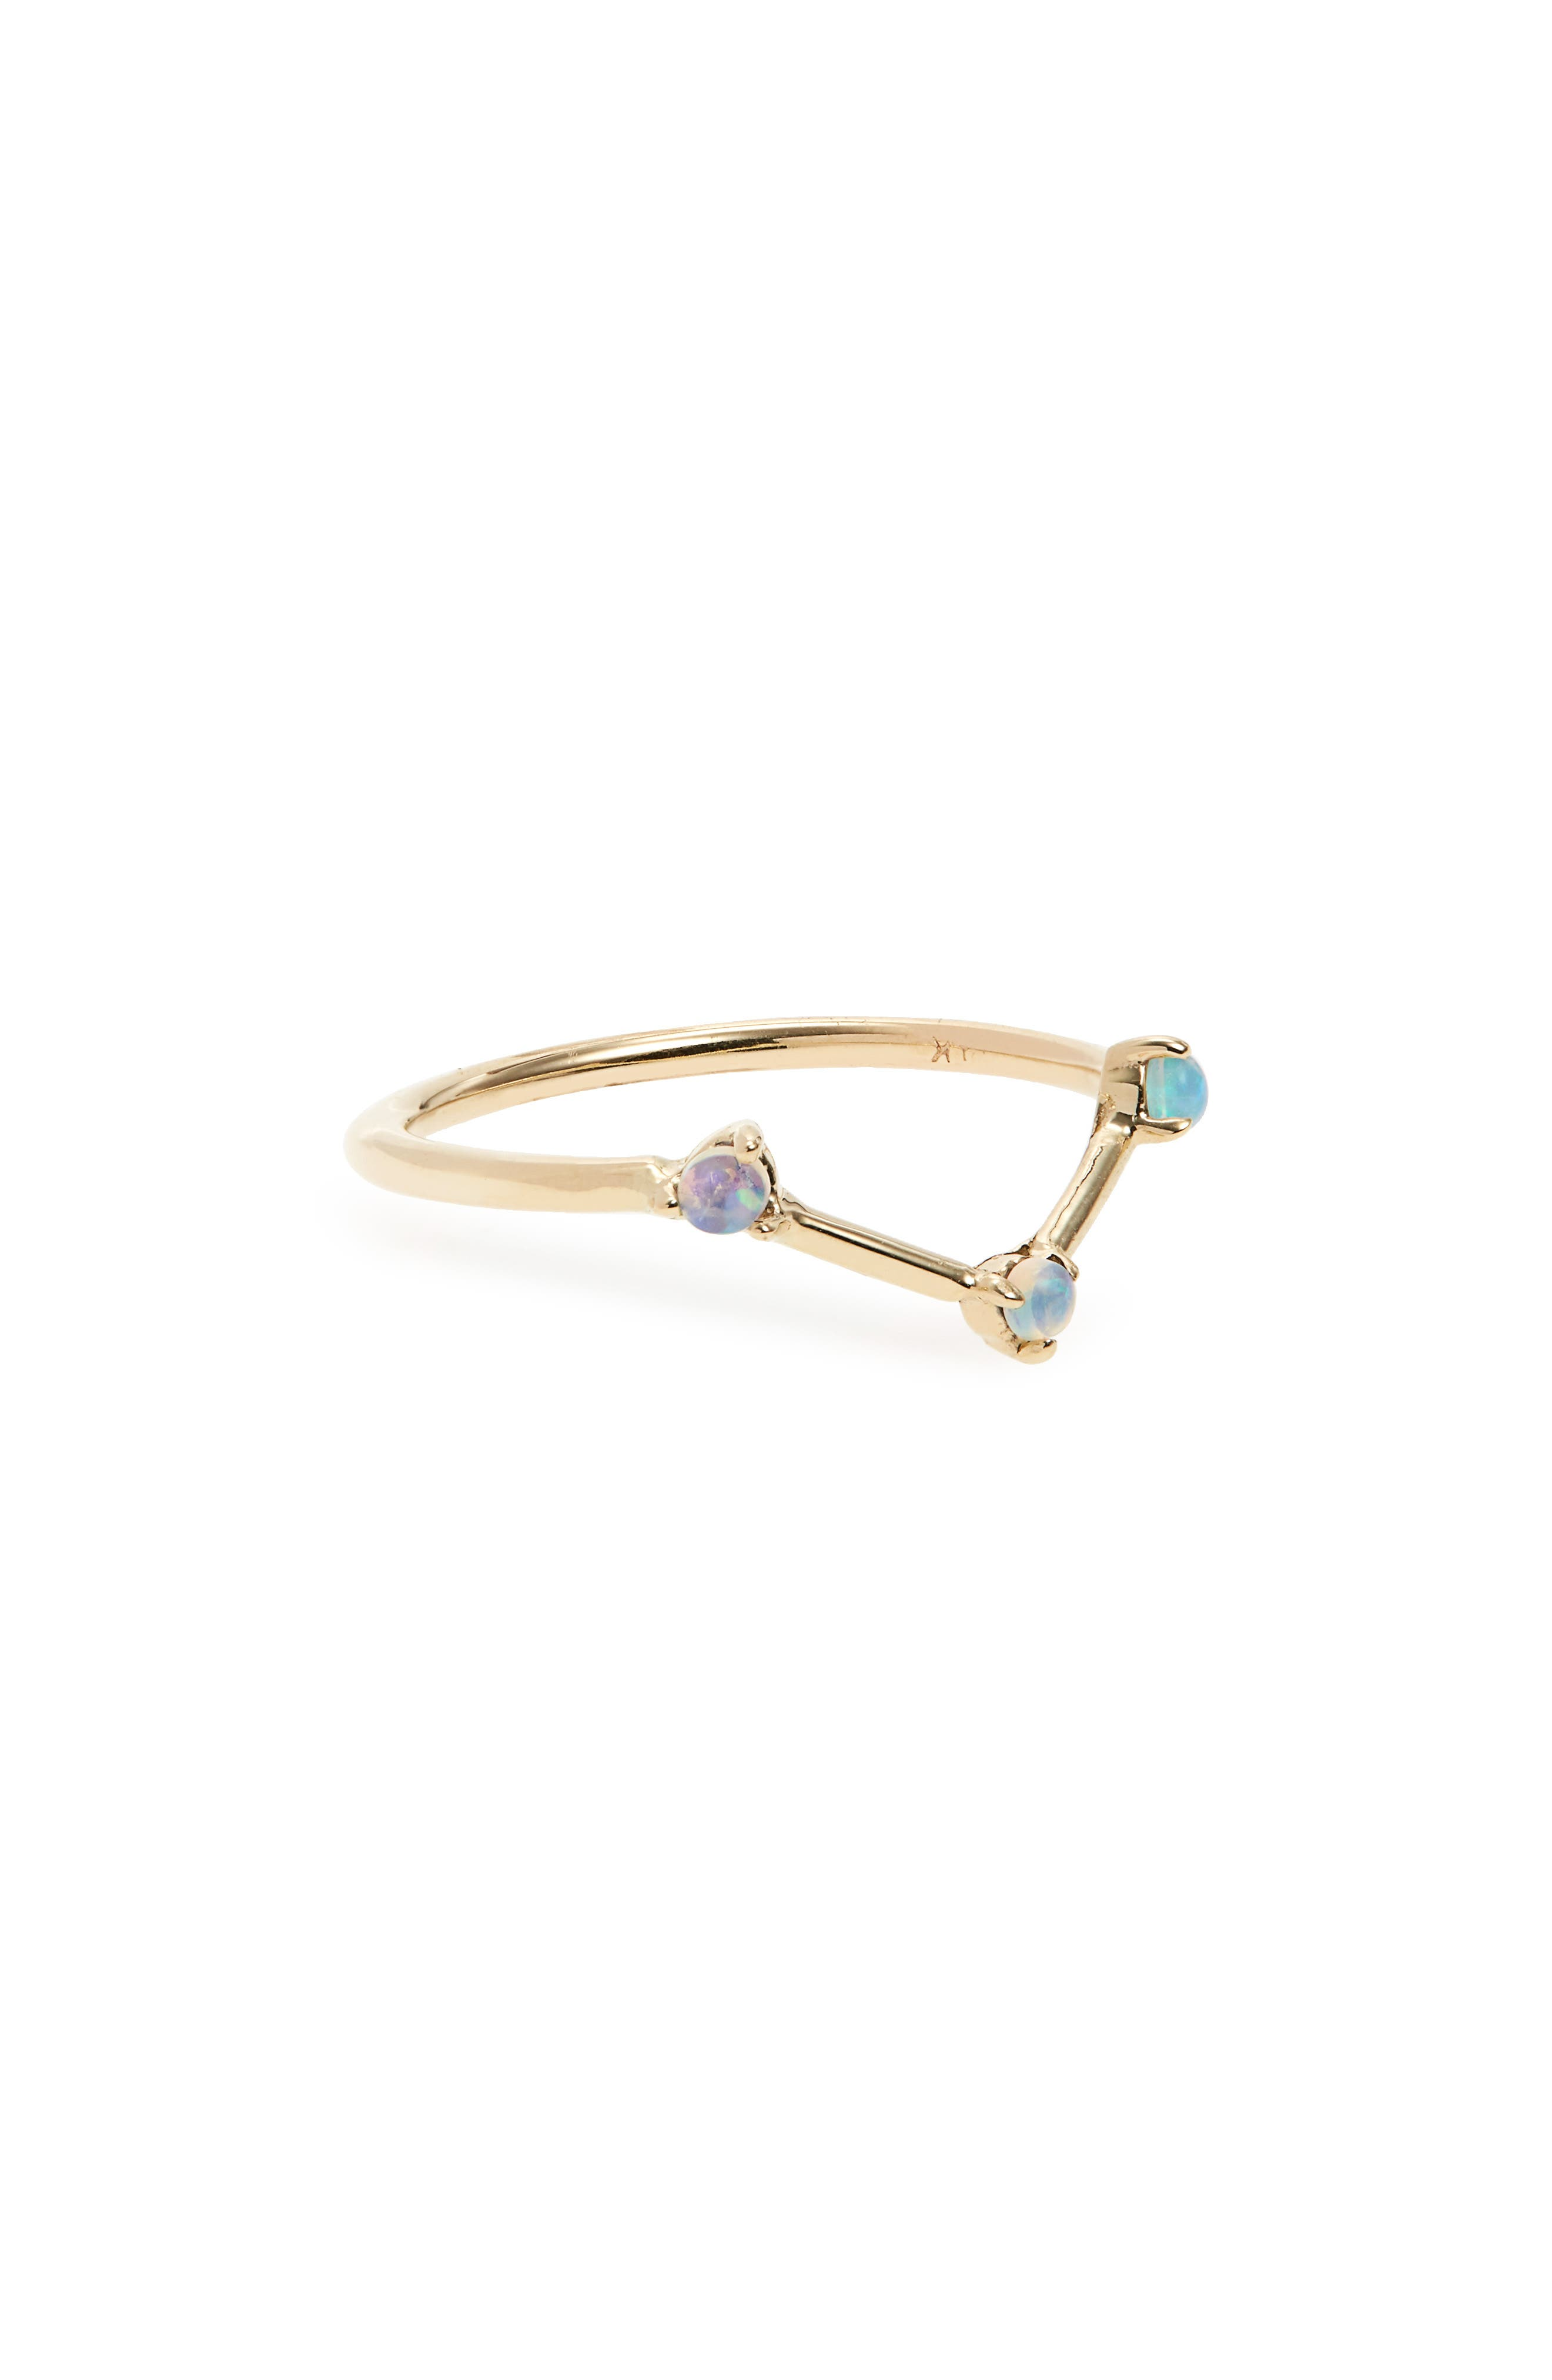 Counting Collection Three-Step Triangle Opal Ring,                             Main thumbnail 1, color,                             YELLOW/ GOLD